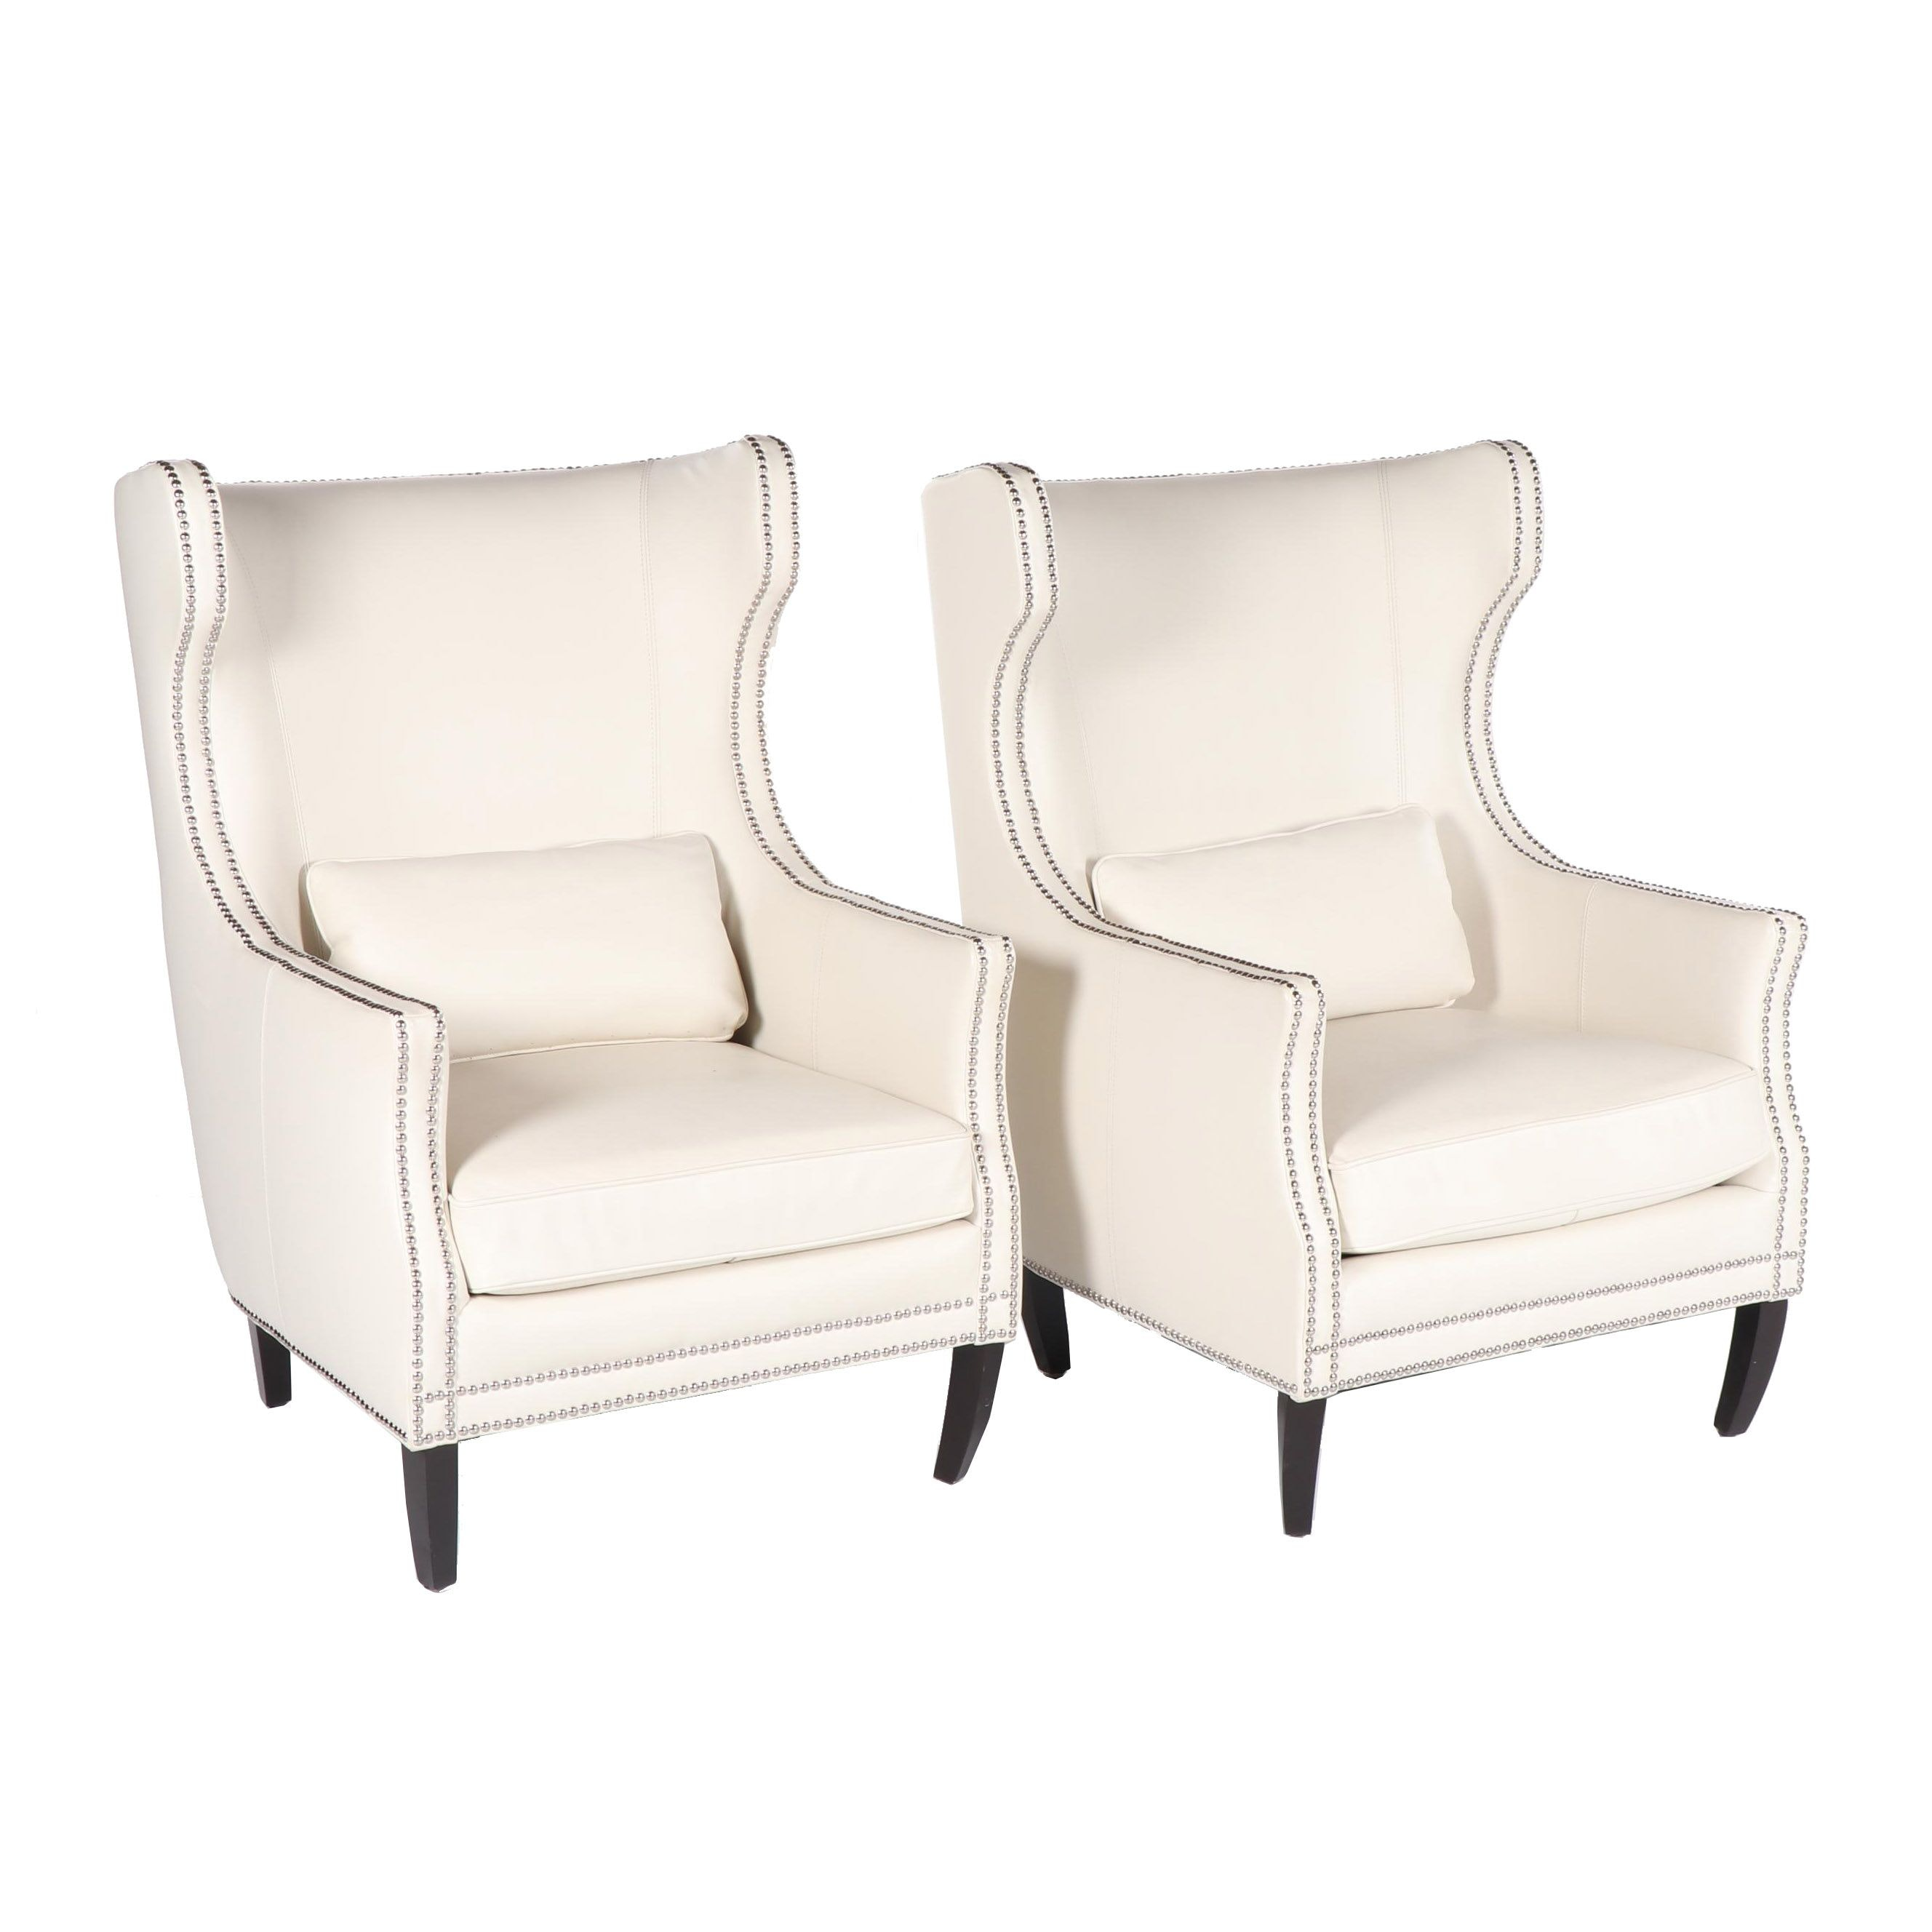 """Davis"" Leather Wingback Armchairs by Z Gallerie, 21st Century"